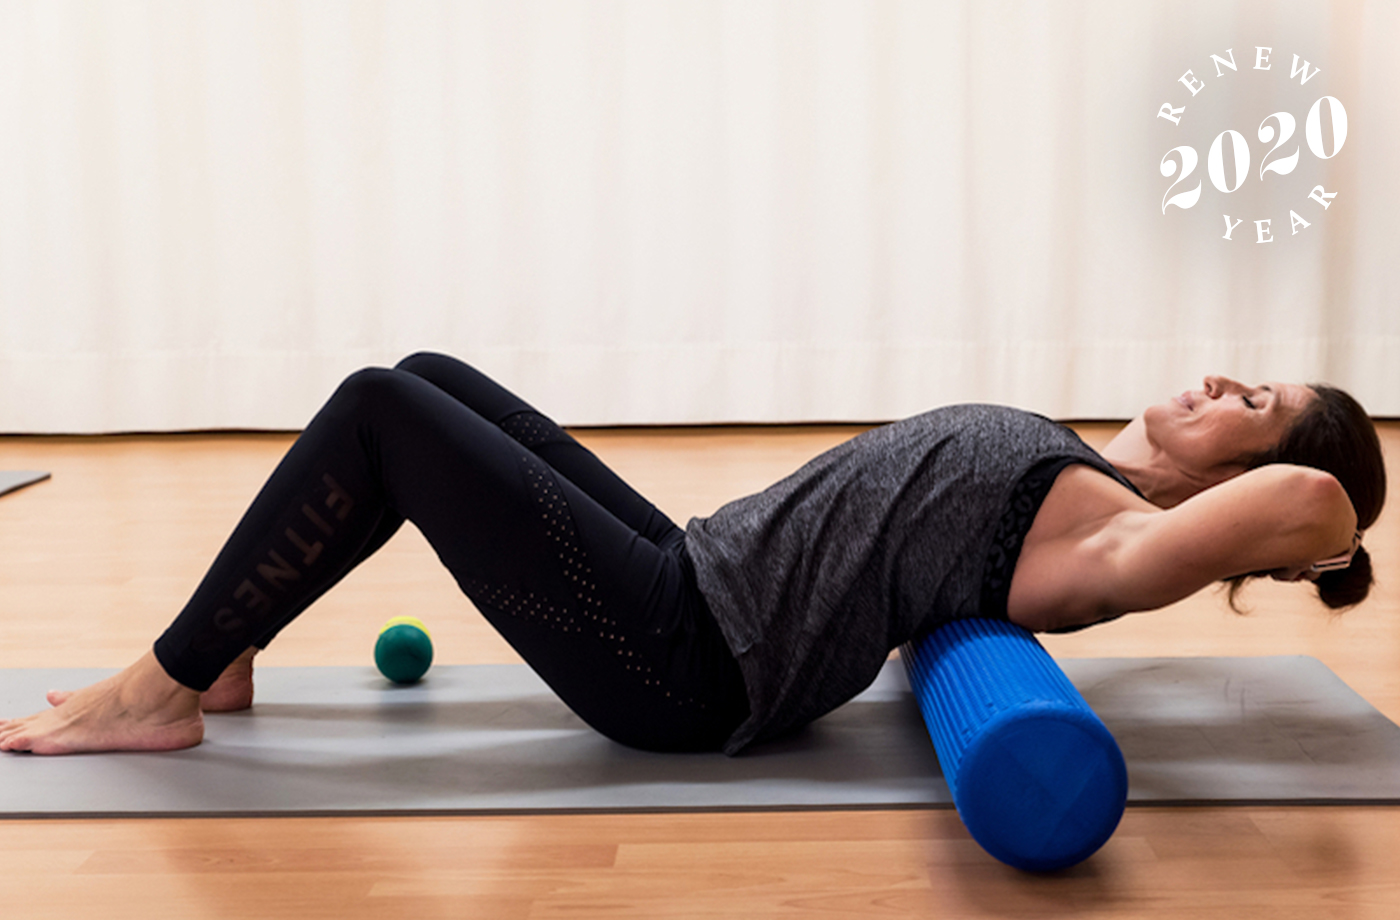 How to use your foam roller for lymphatic drainage (because it works for that too)